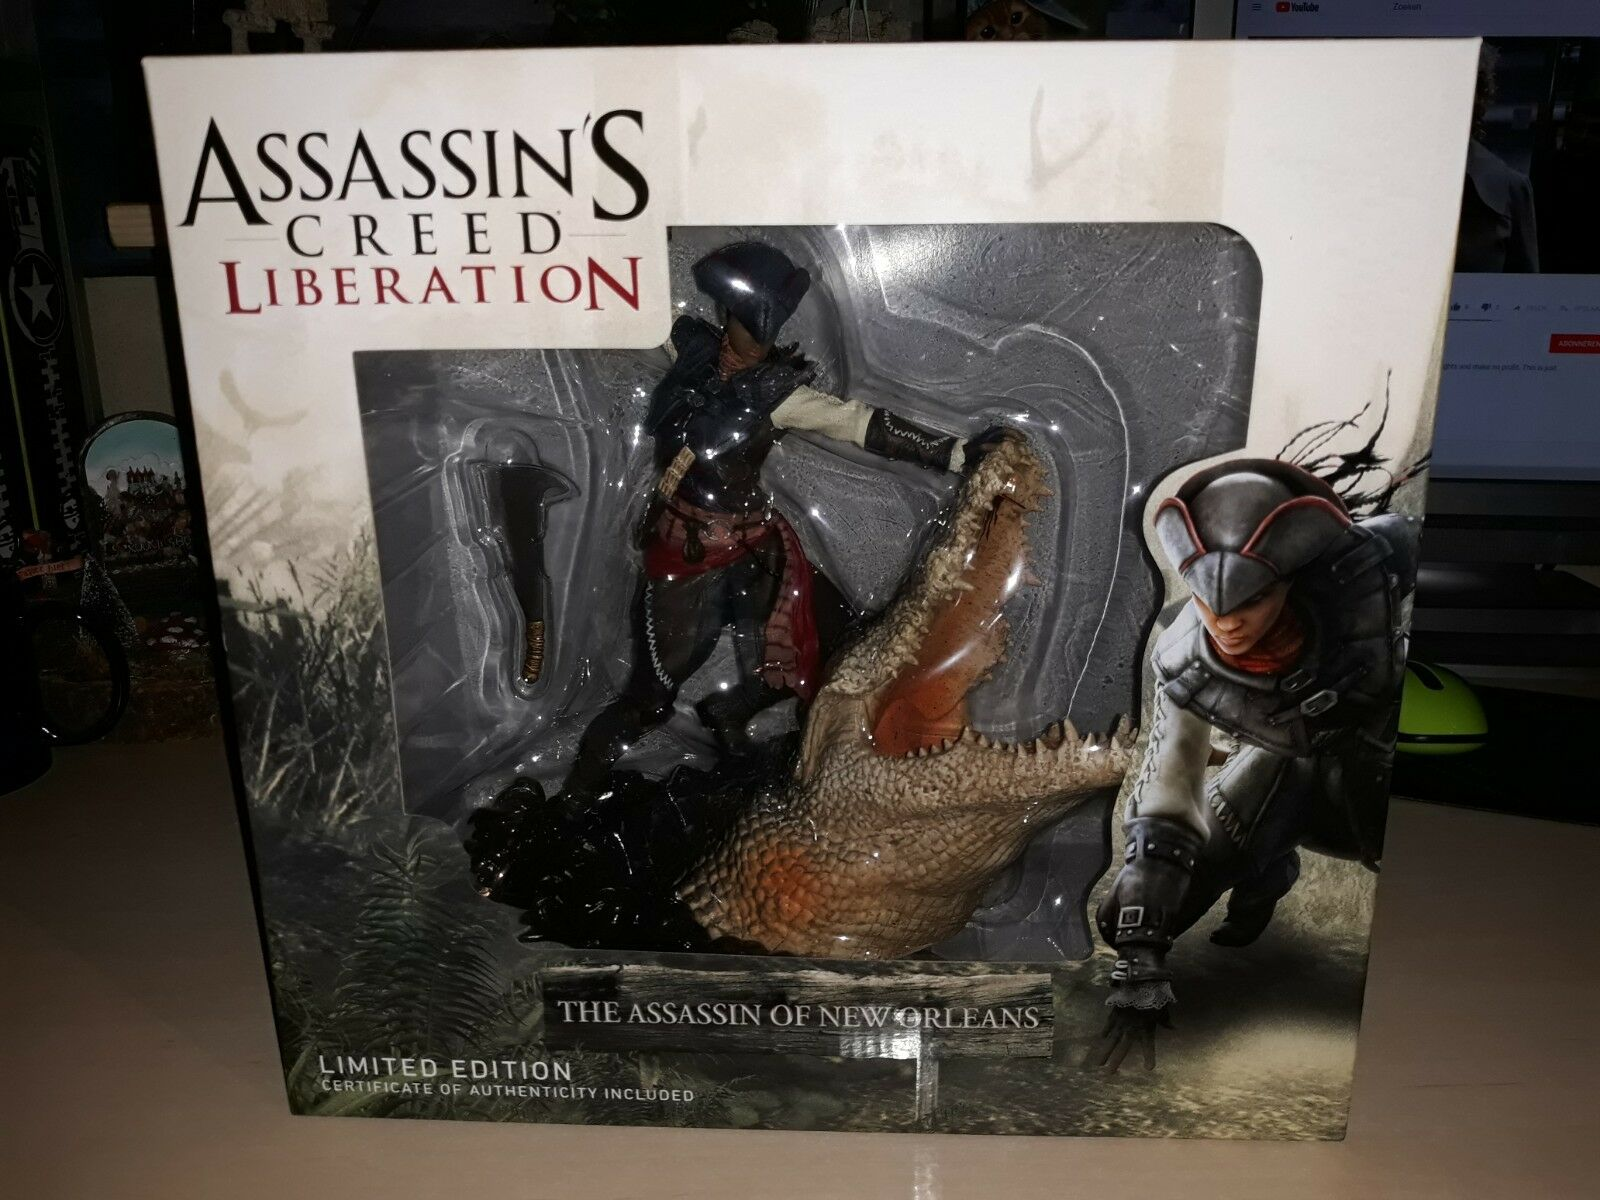 ASSASSIN'S CREED LIBERATION - AVELINE THE ASSASSIN OF NEW ORLEANS FIGURINE 27 cm